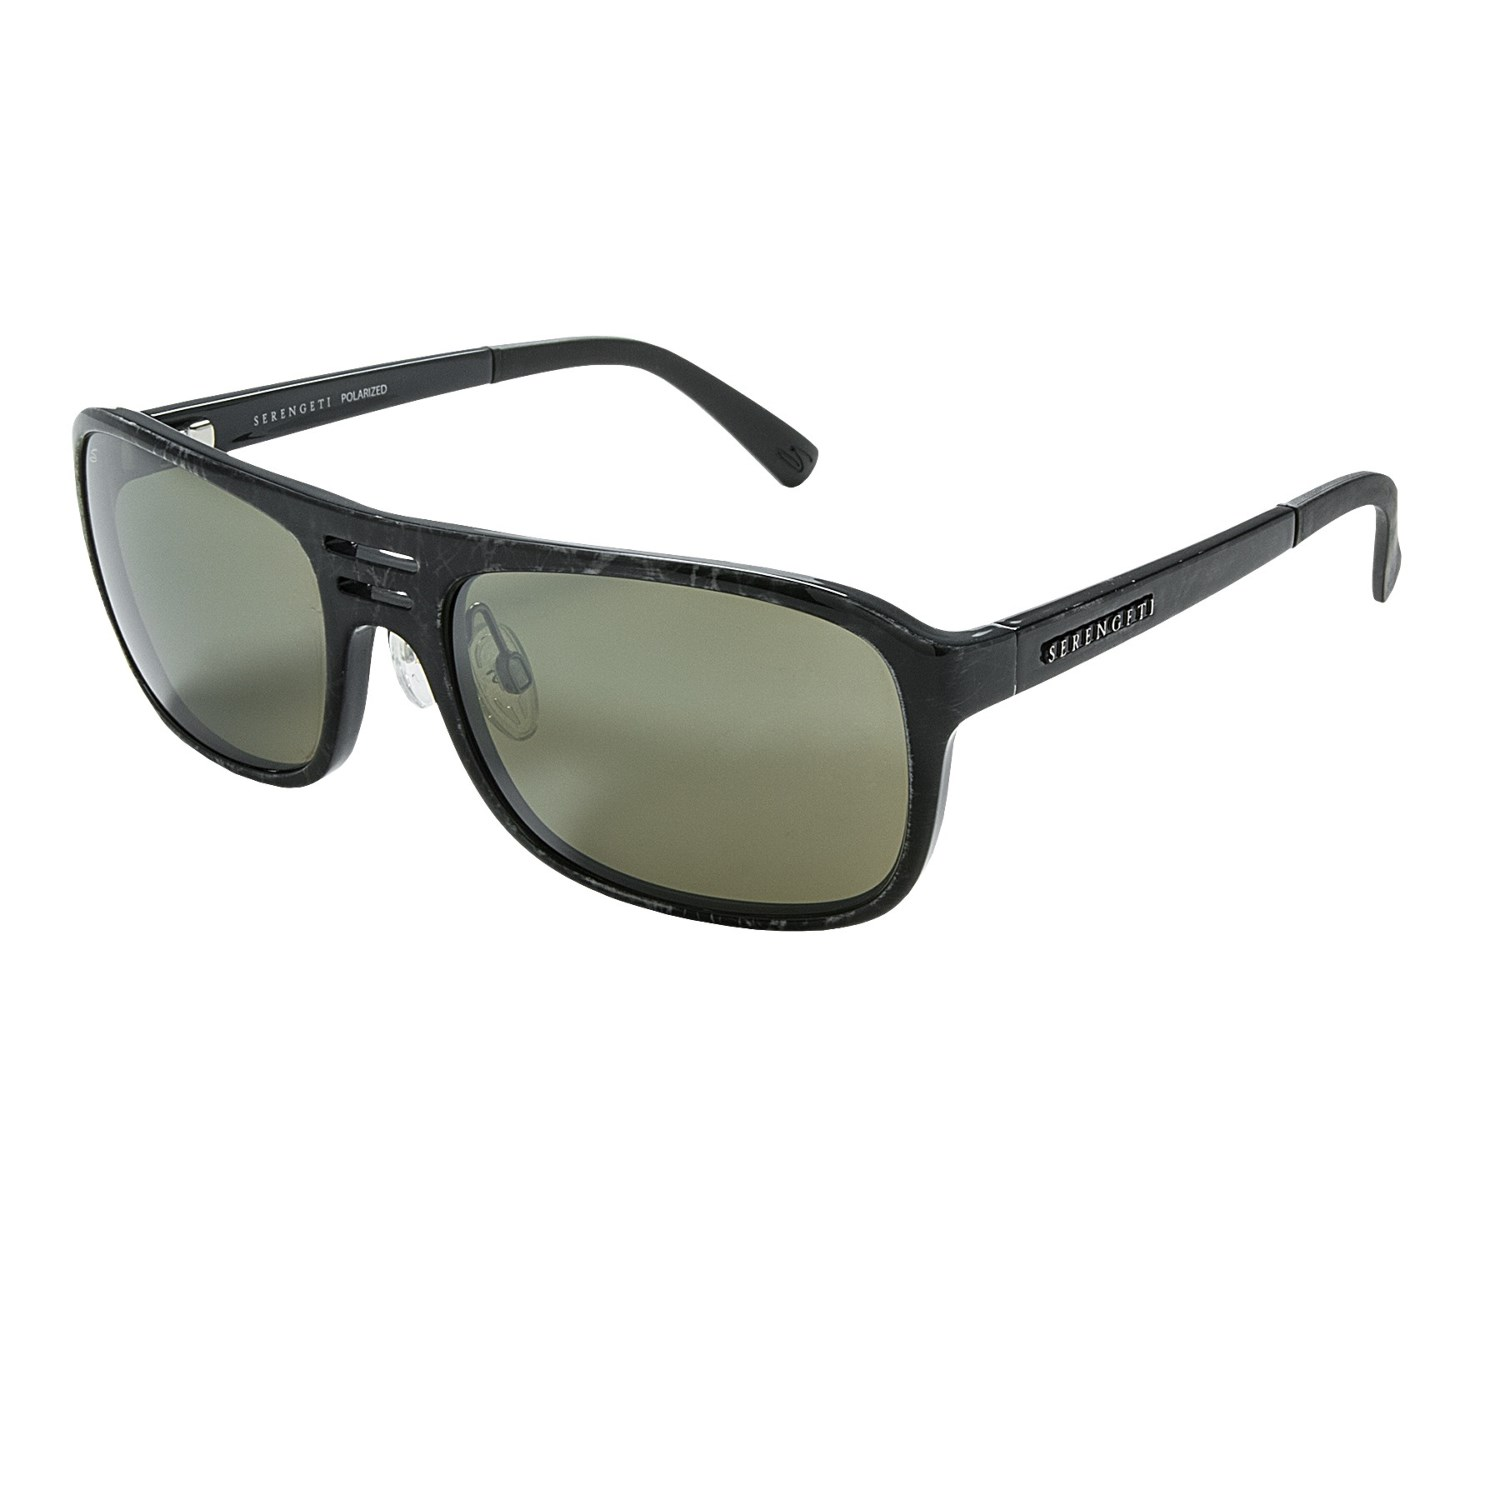 Sunglasses With Glass Lenses  serengeti lorenzo sunglasses polarized photochromic glass